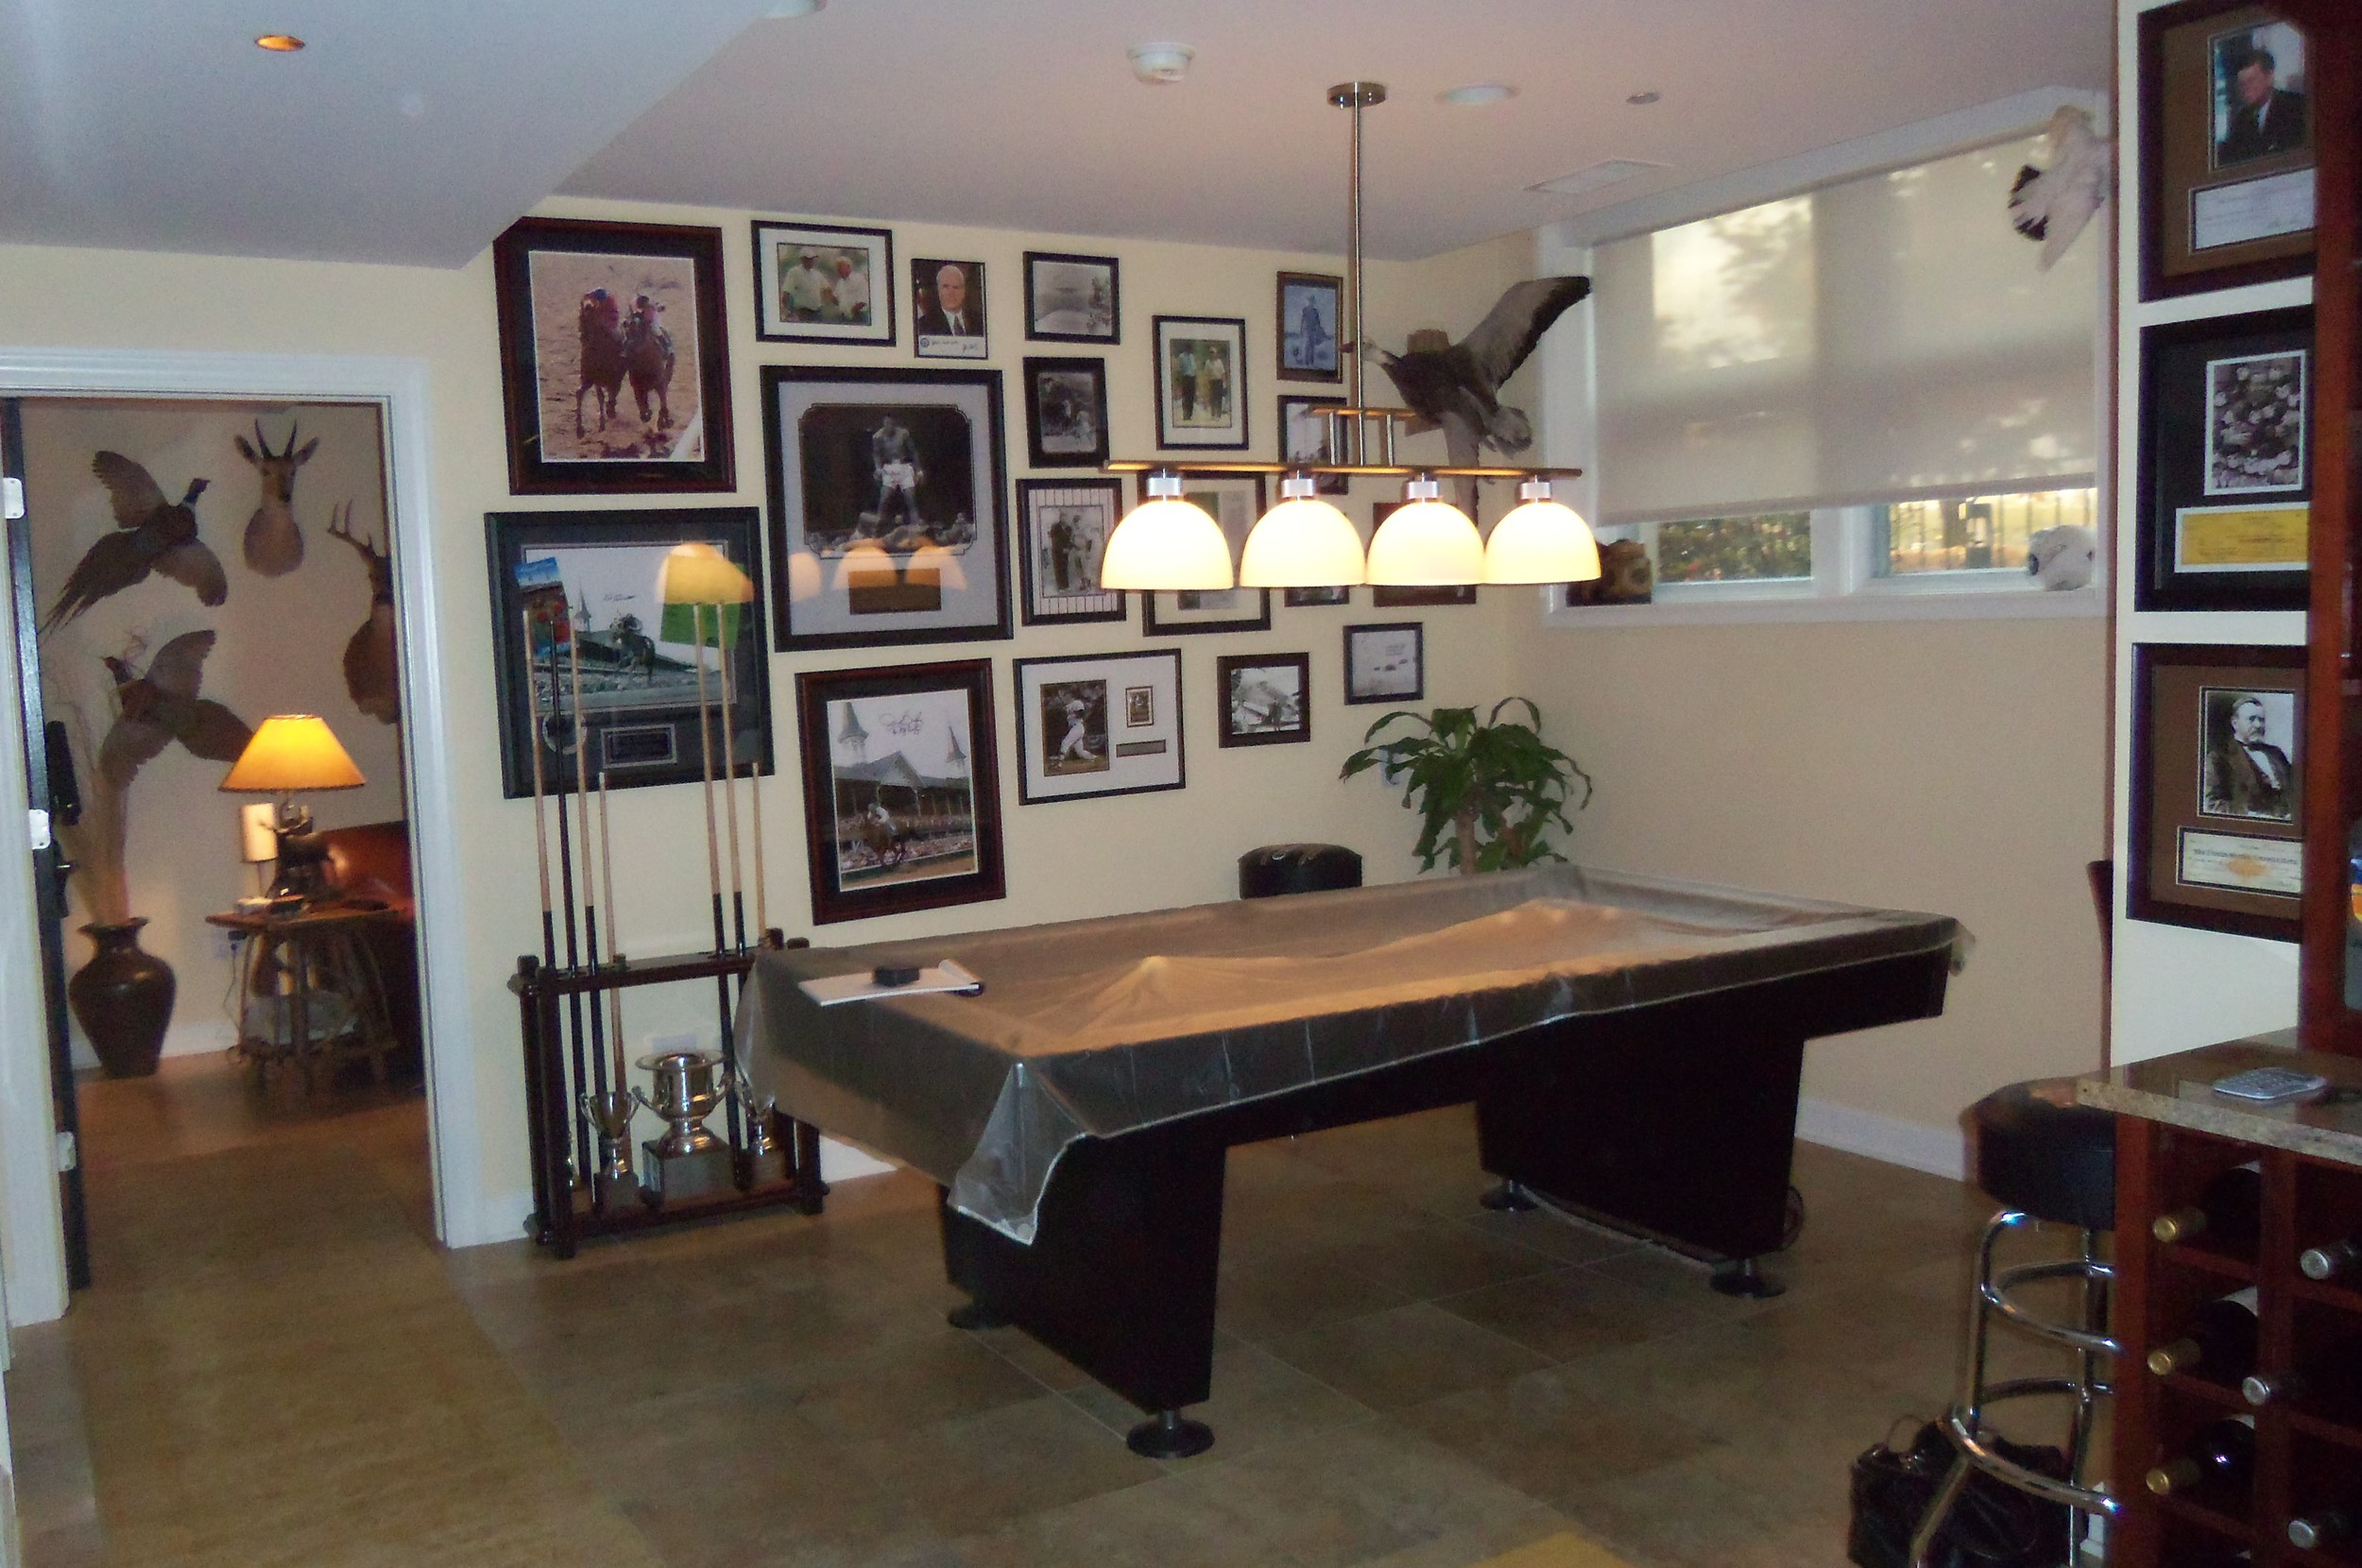 Before Photo: Pool Table Area